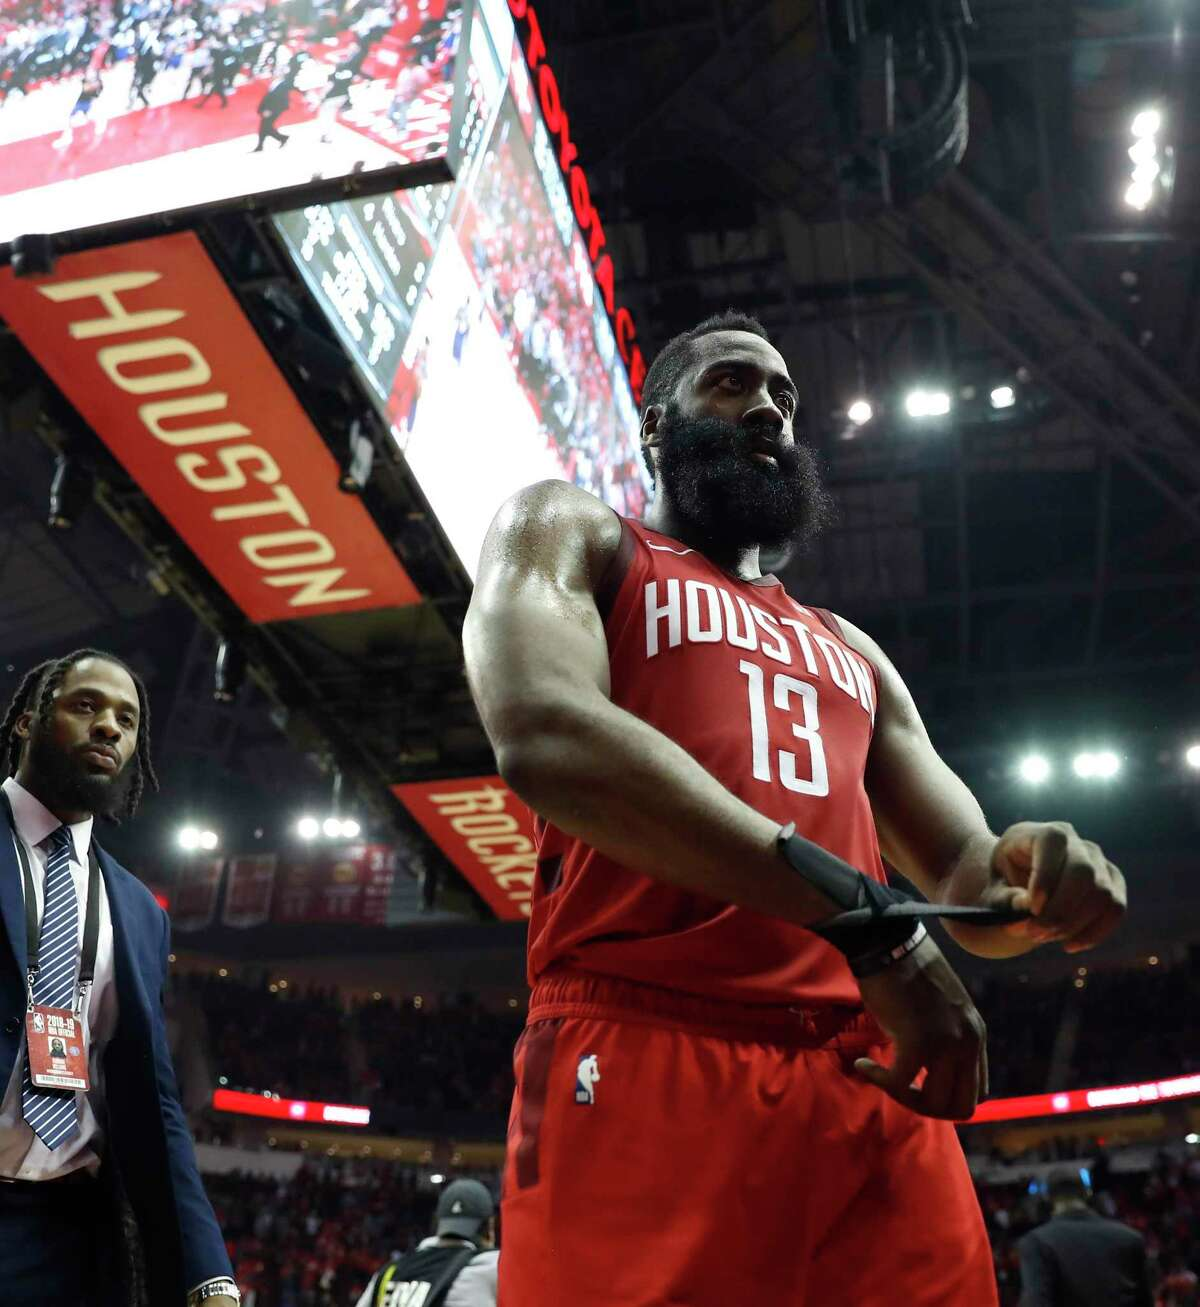 After losing to the Warriors in 2019, the Rockets traded away Chris Paul and brought in Russell Westbrook to appease James Harden.